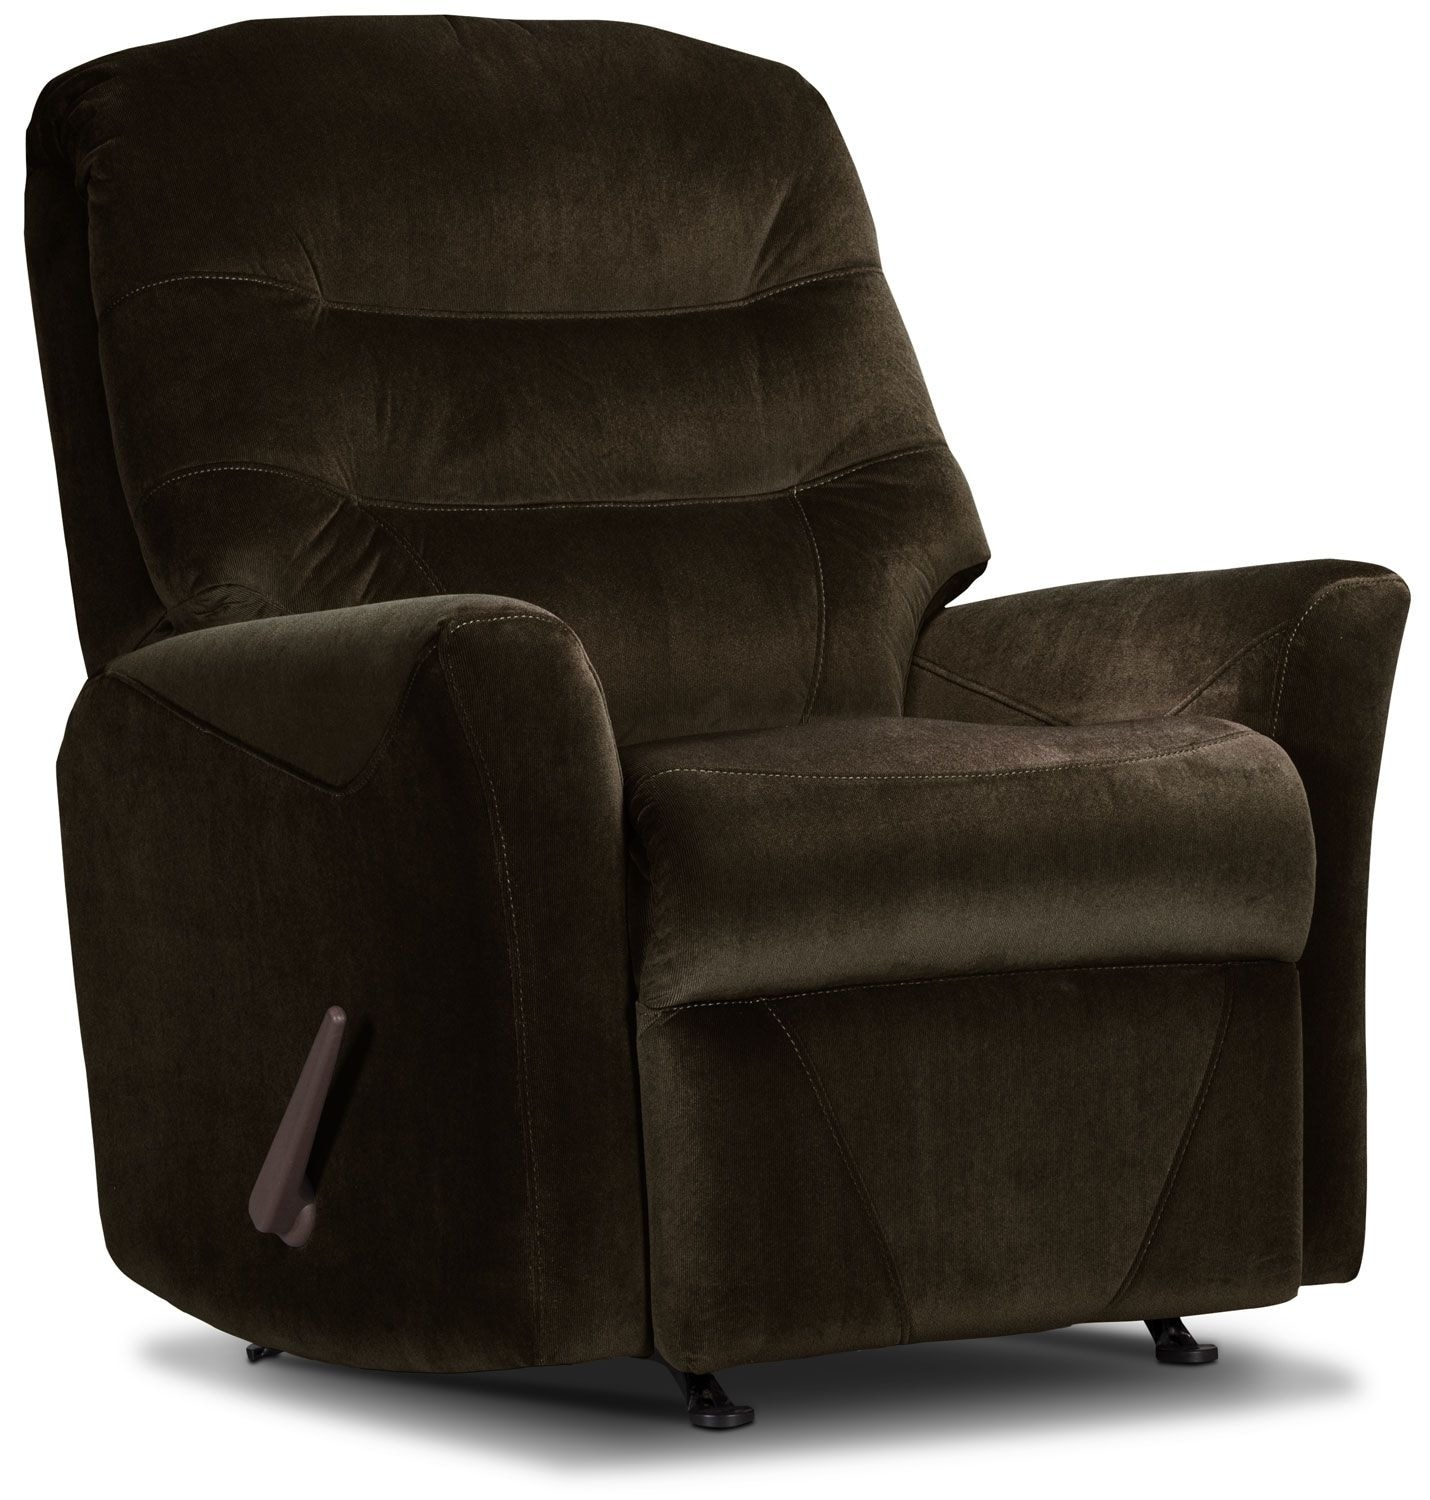 Living Room Furniture - Designed2B Recliner 4560 Microsuede Rocker Recliner - Chocolate